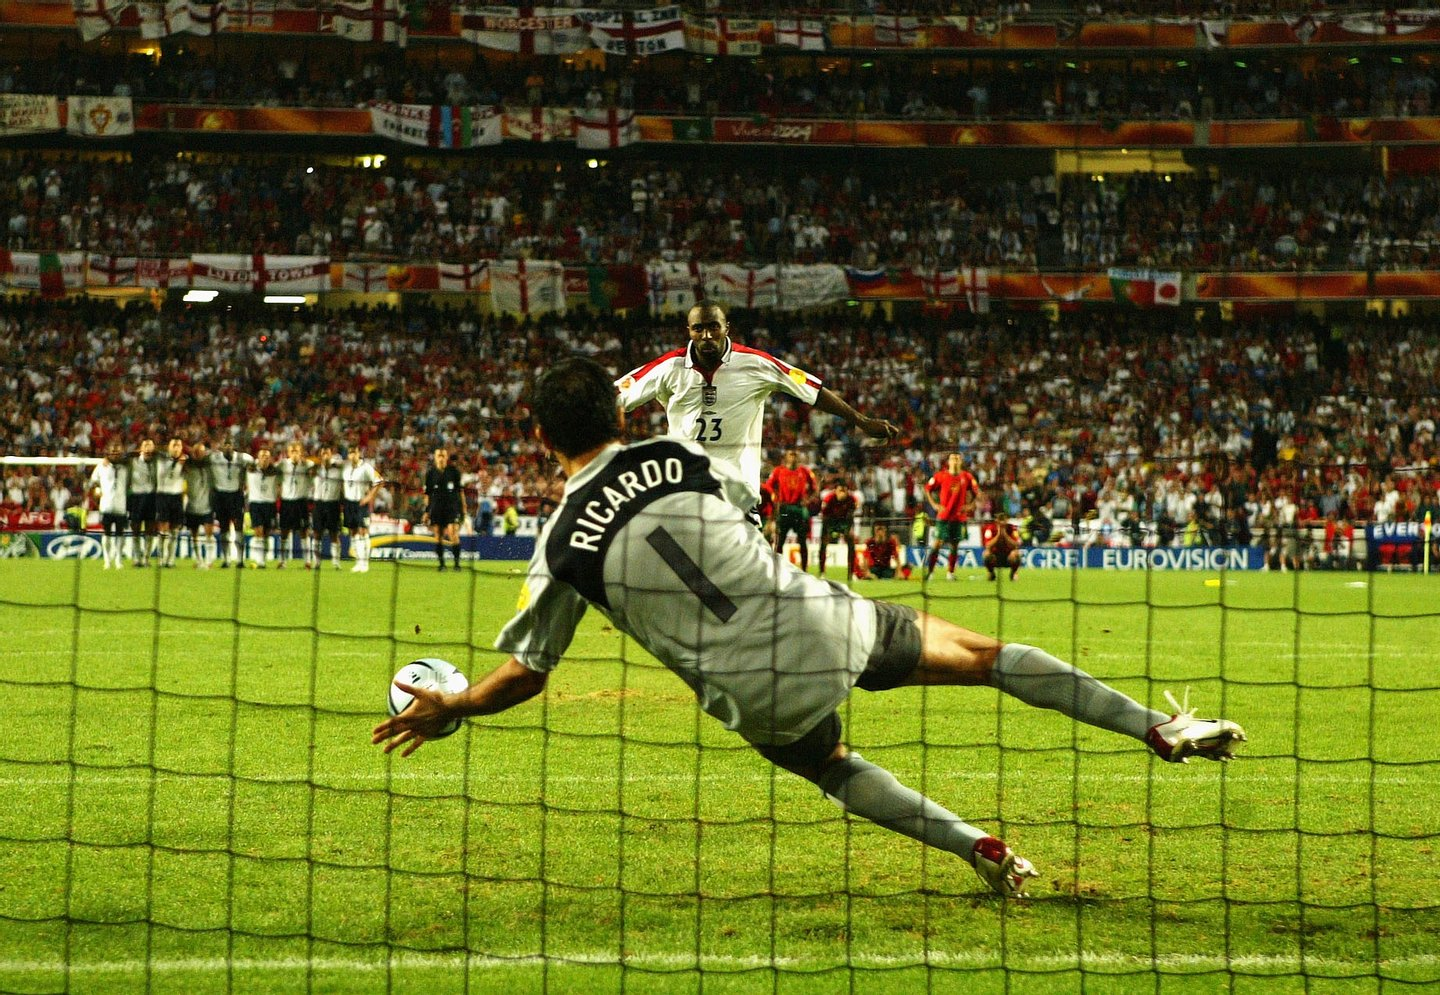 LISBON, PORTUGAL - JUNE 24: Darius Vassell of England has his penalty saved by goalkeeper Ricardo of Portugal during the UEFA Euro 2004 Quarter Final match between Portugal and England at the Luz Stadium on June 24, 2004 in Lisbon, Portugal. (Photo by Shaun Botterill/Getty Images)